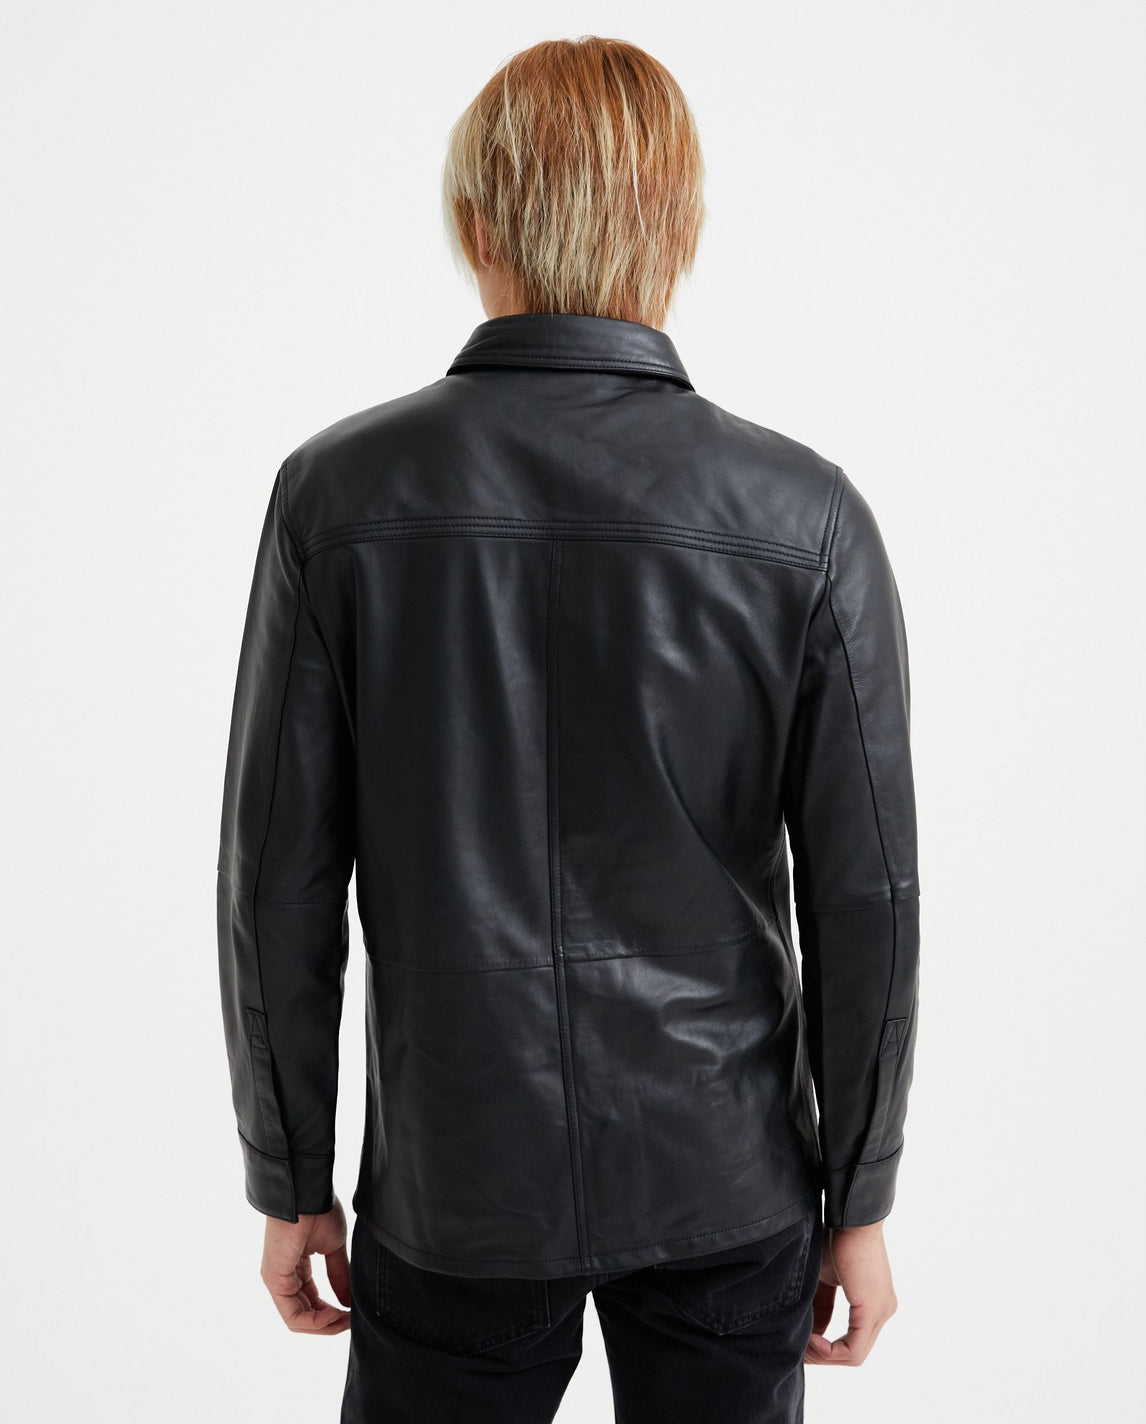 Drake Leather Shirt - Black MENS 1017 ALYX 9SM